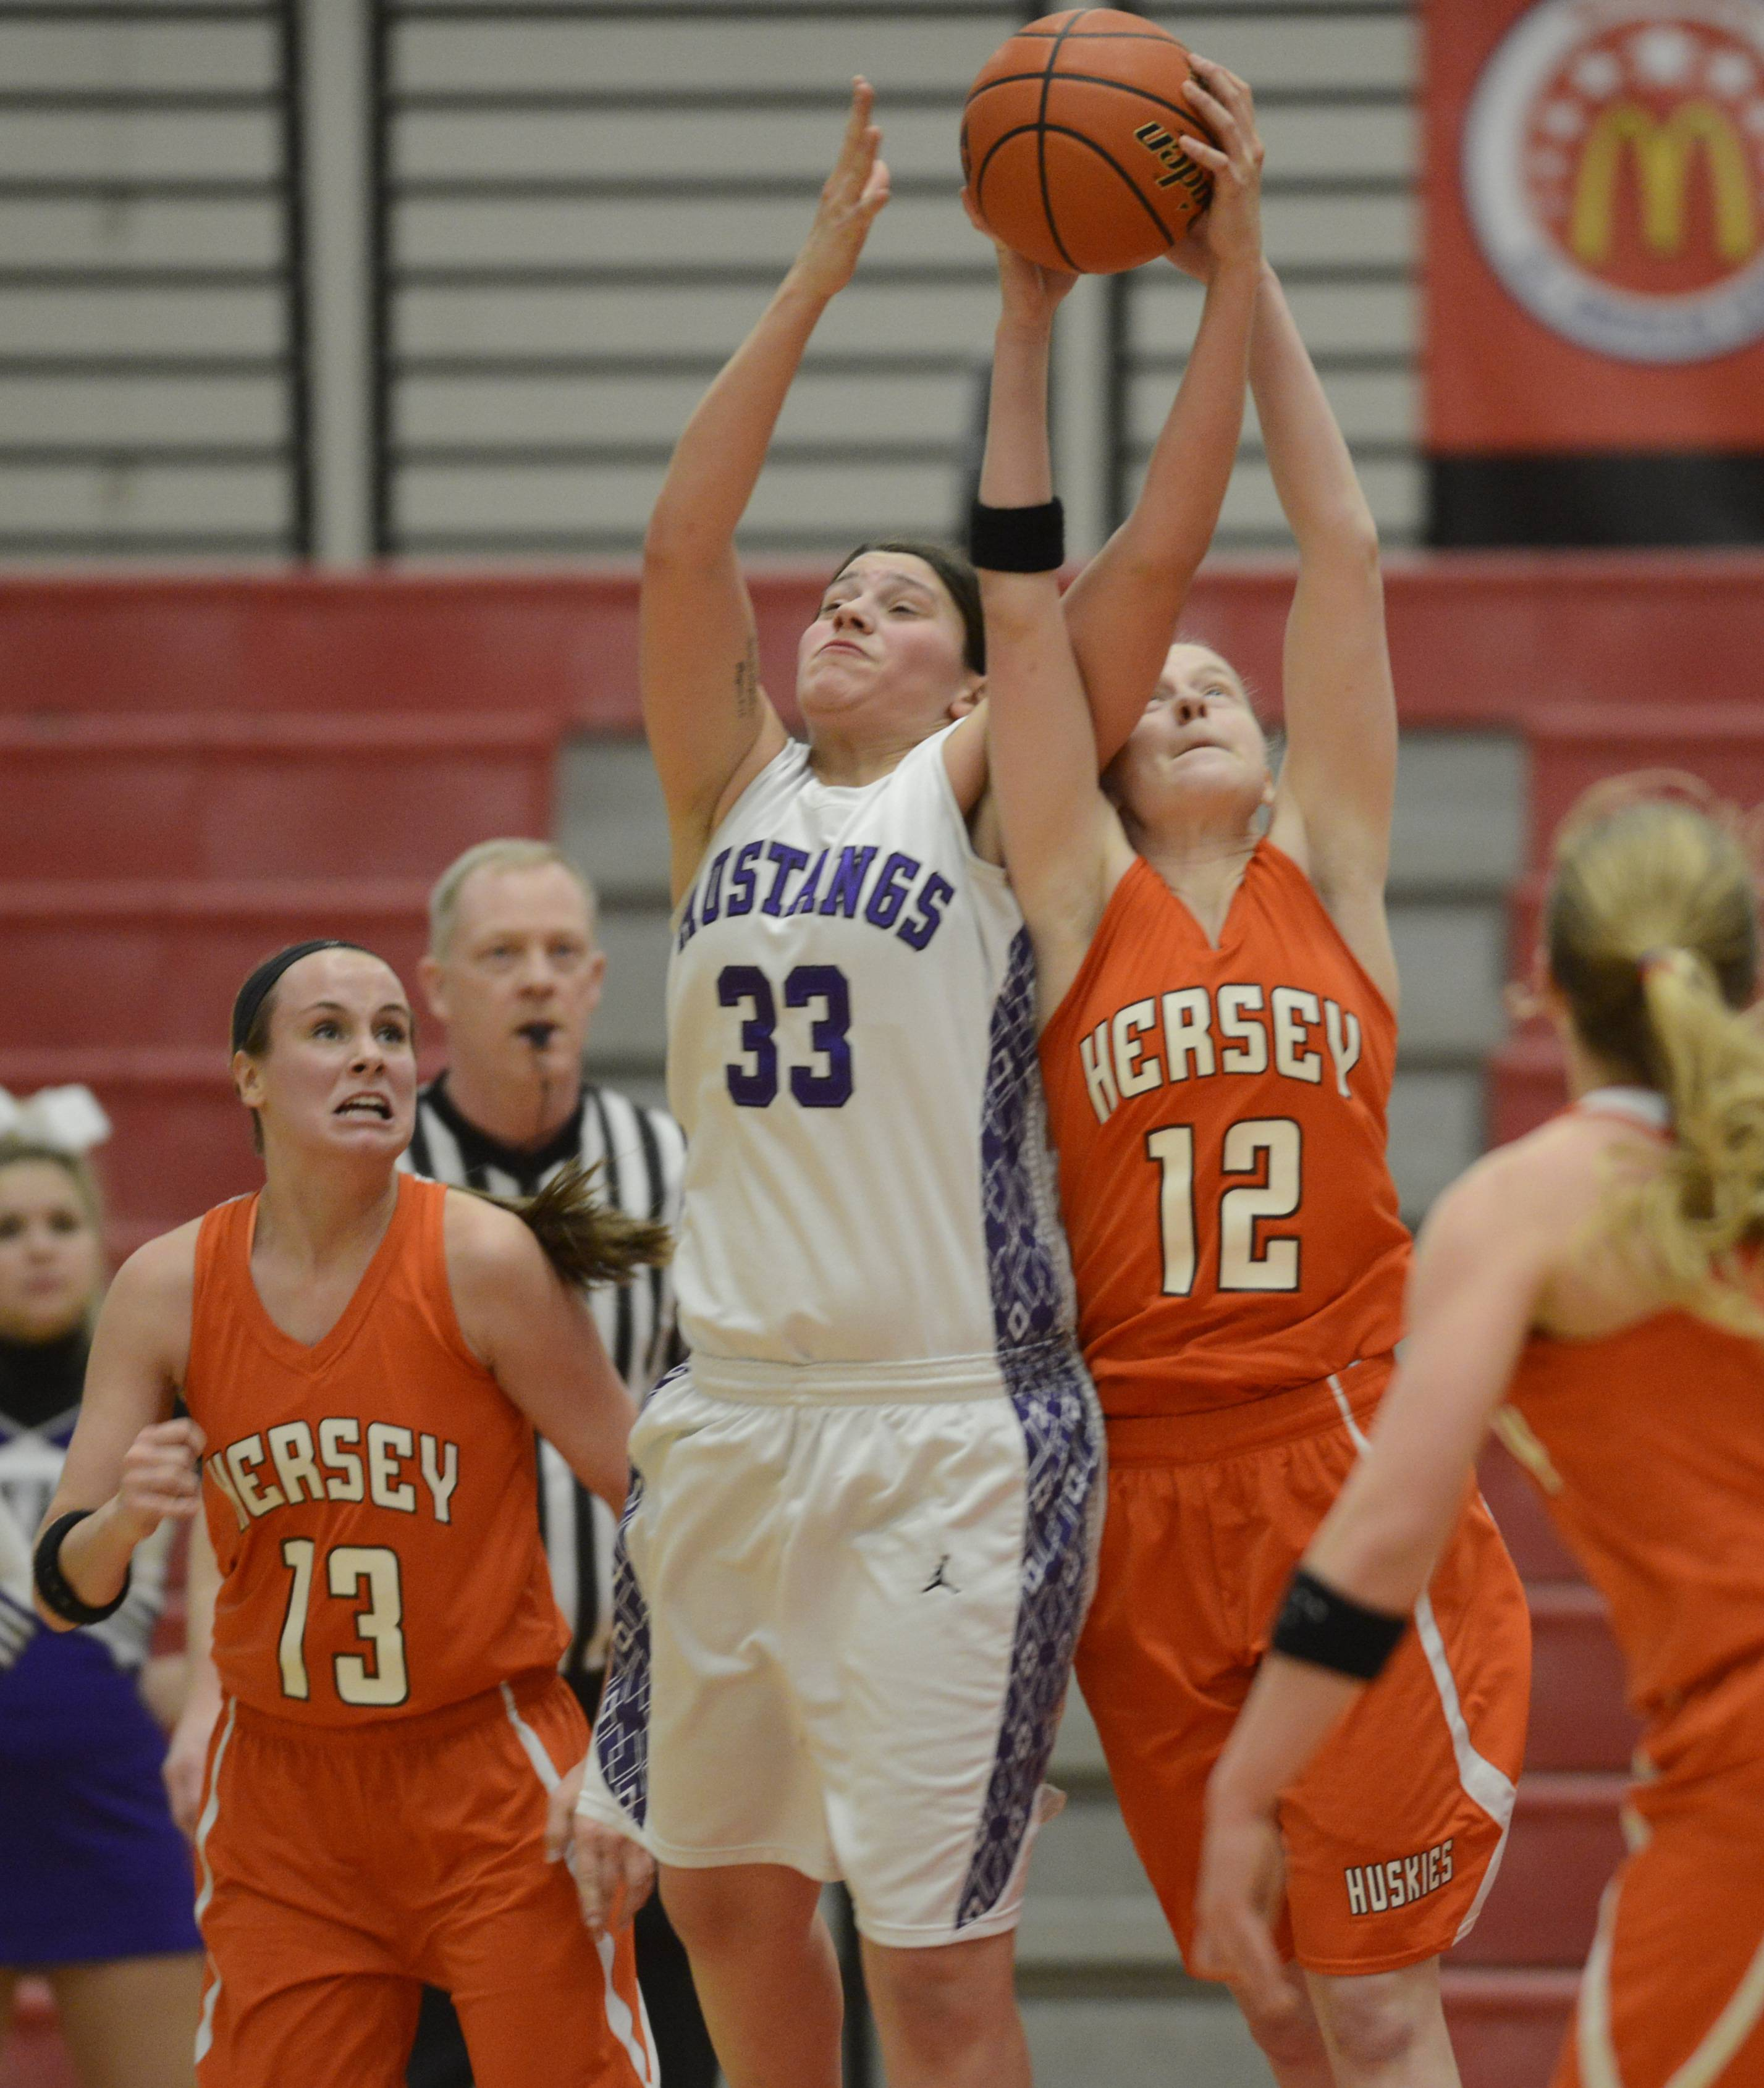 Images from the Rolling Meadows vs. Hersey IHSA Class 4A sectional semifinal girls basketball game on Tuesday, February 25 in Barrington.